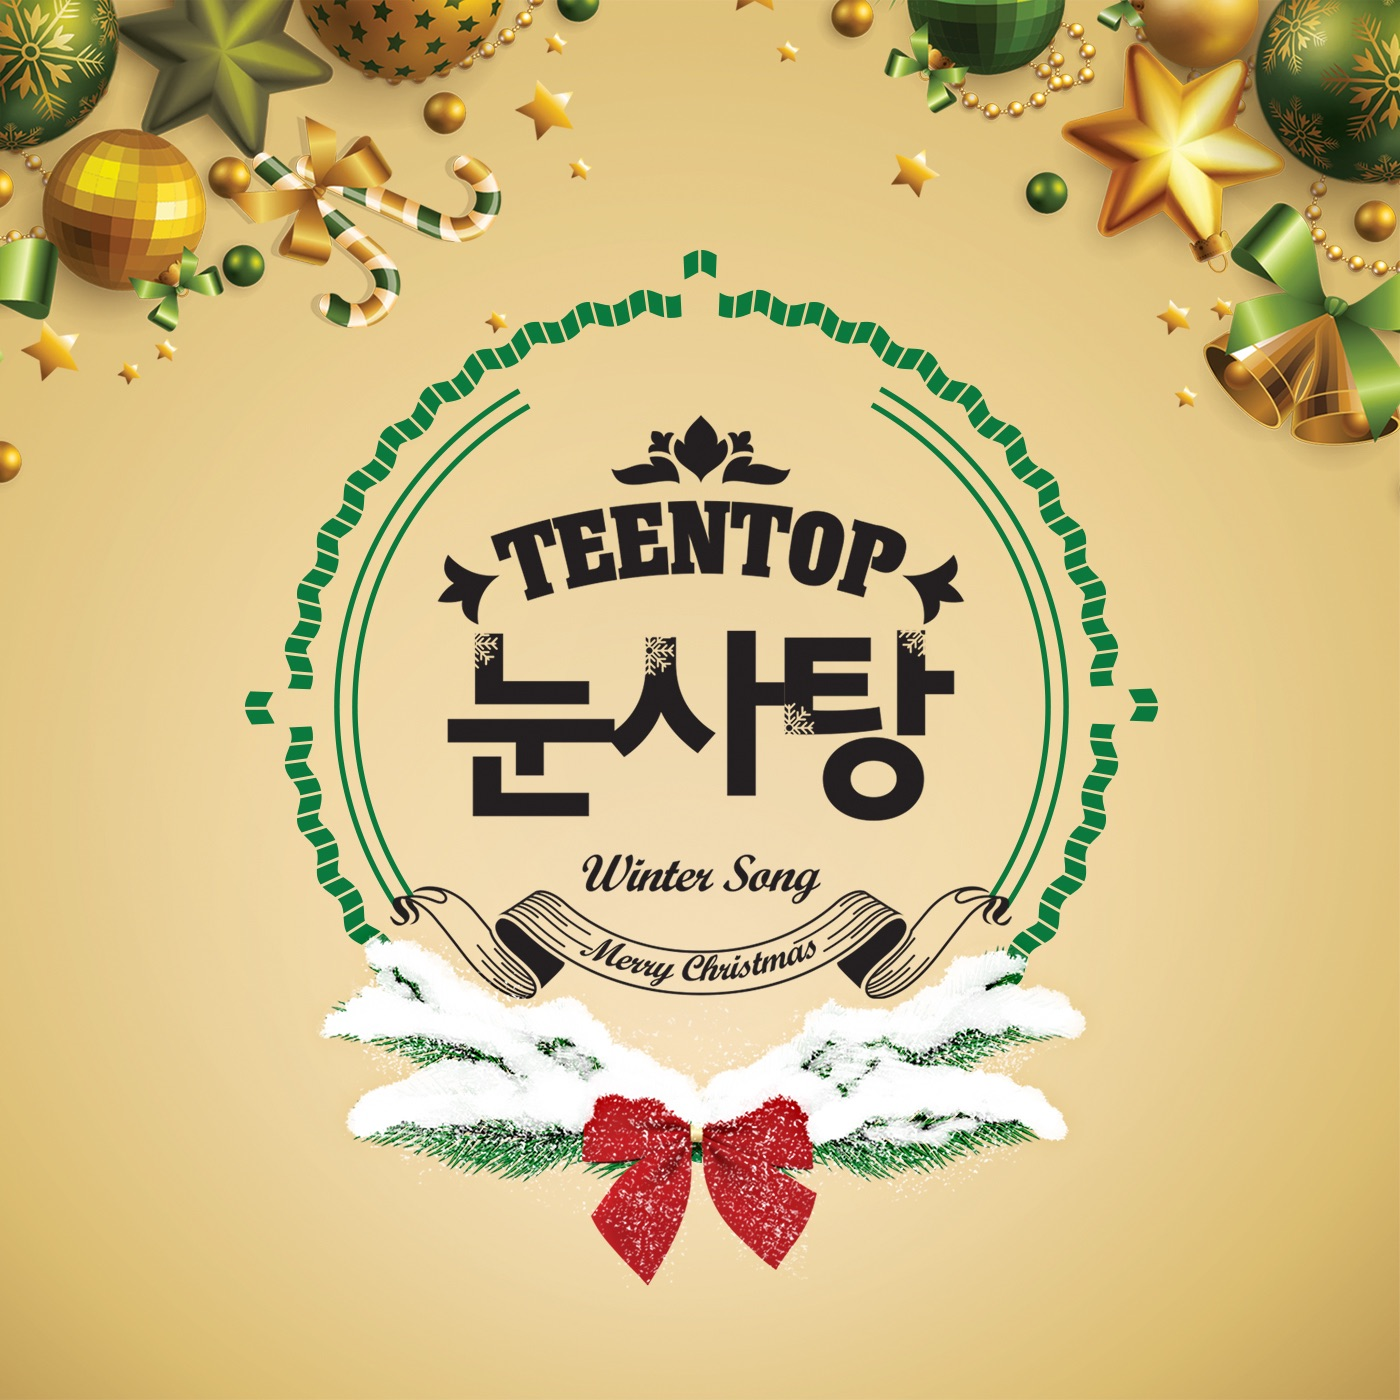 TEEN TOP - TEEN TOP 눈사탕 TEEN TOP Snow Kiss - Single